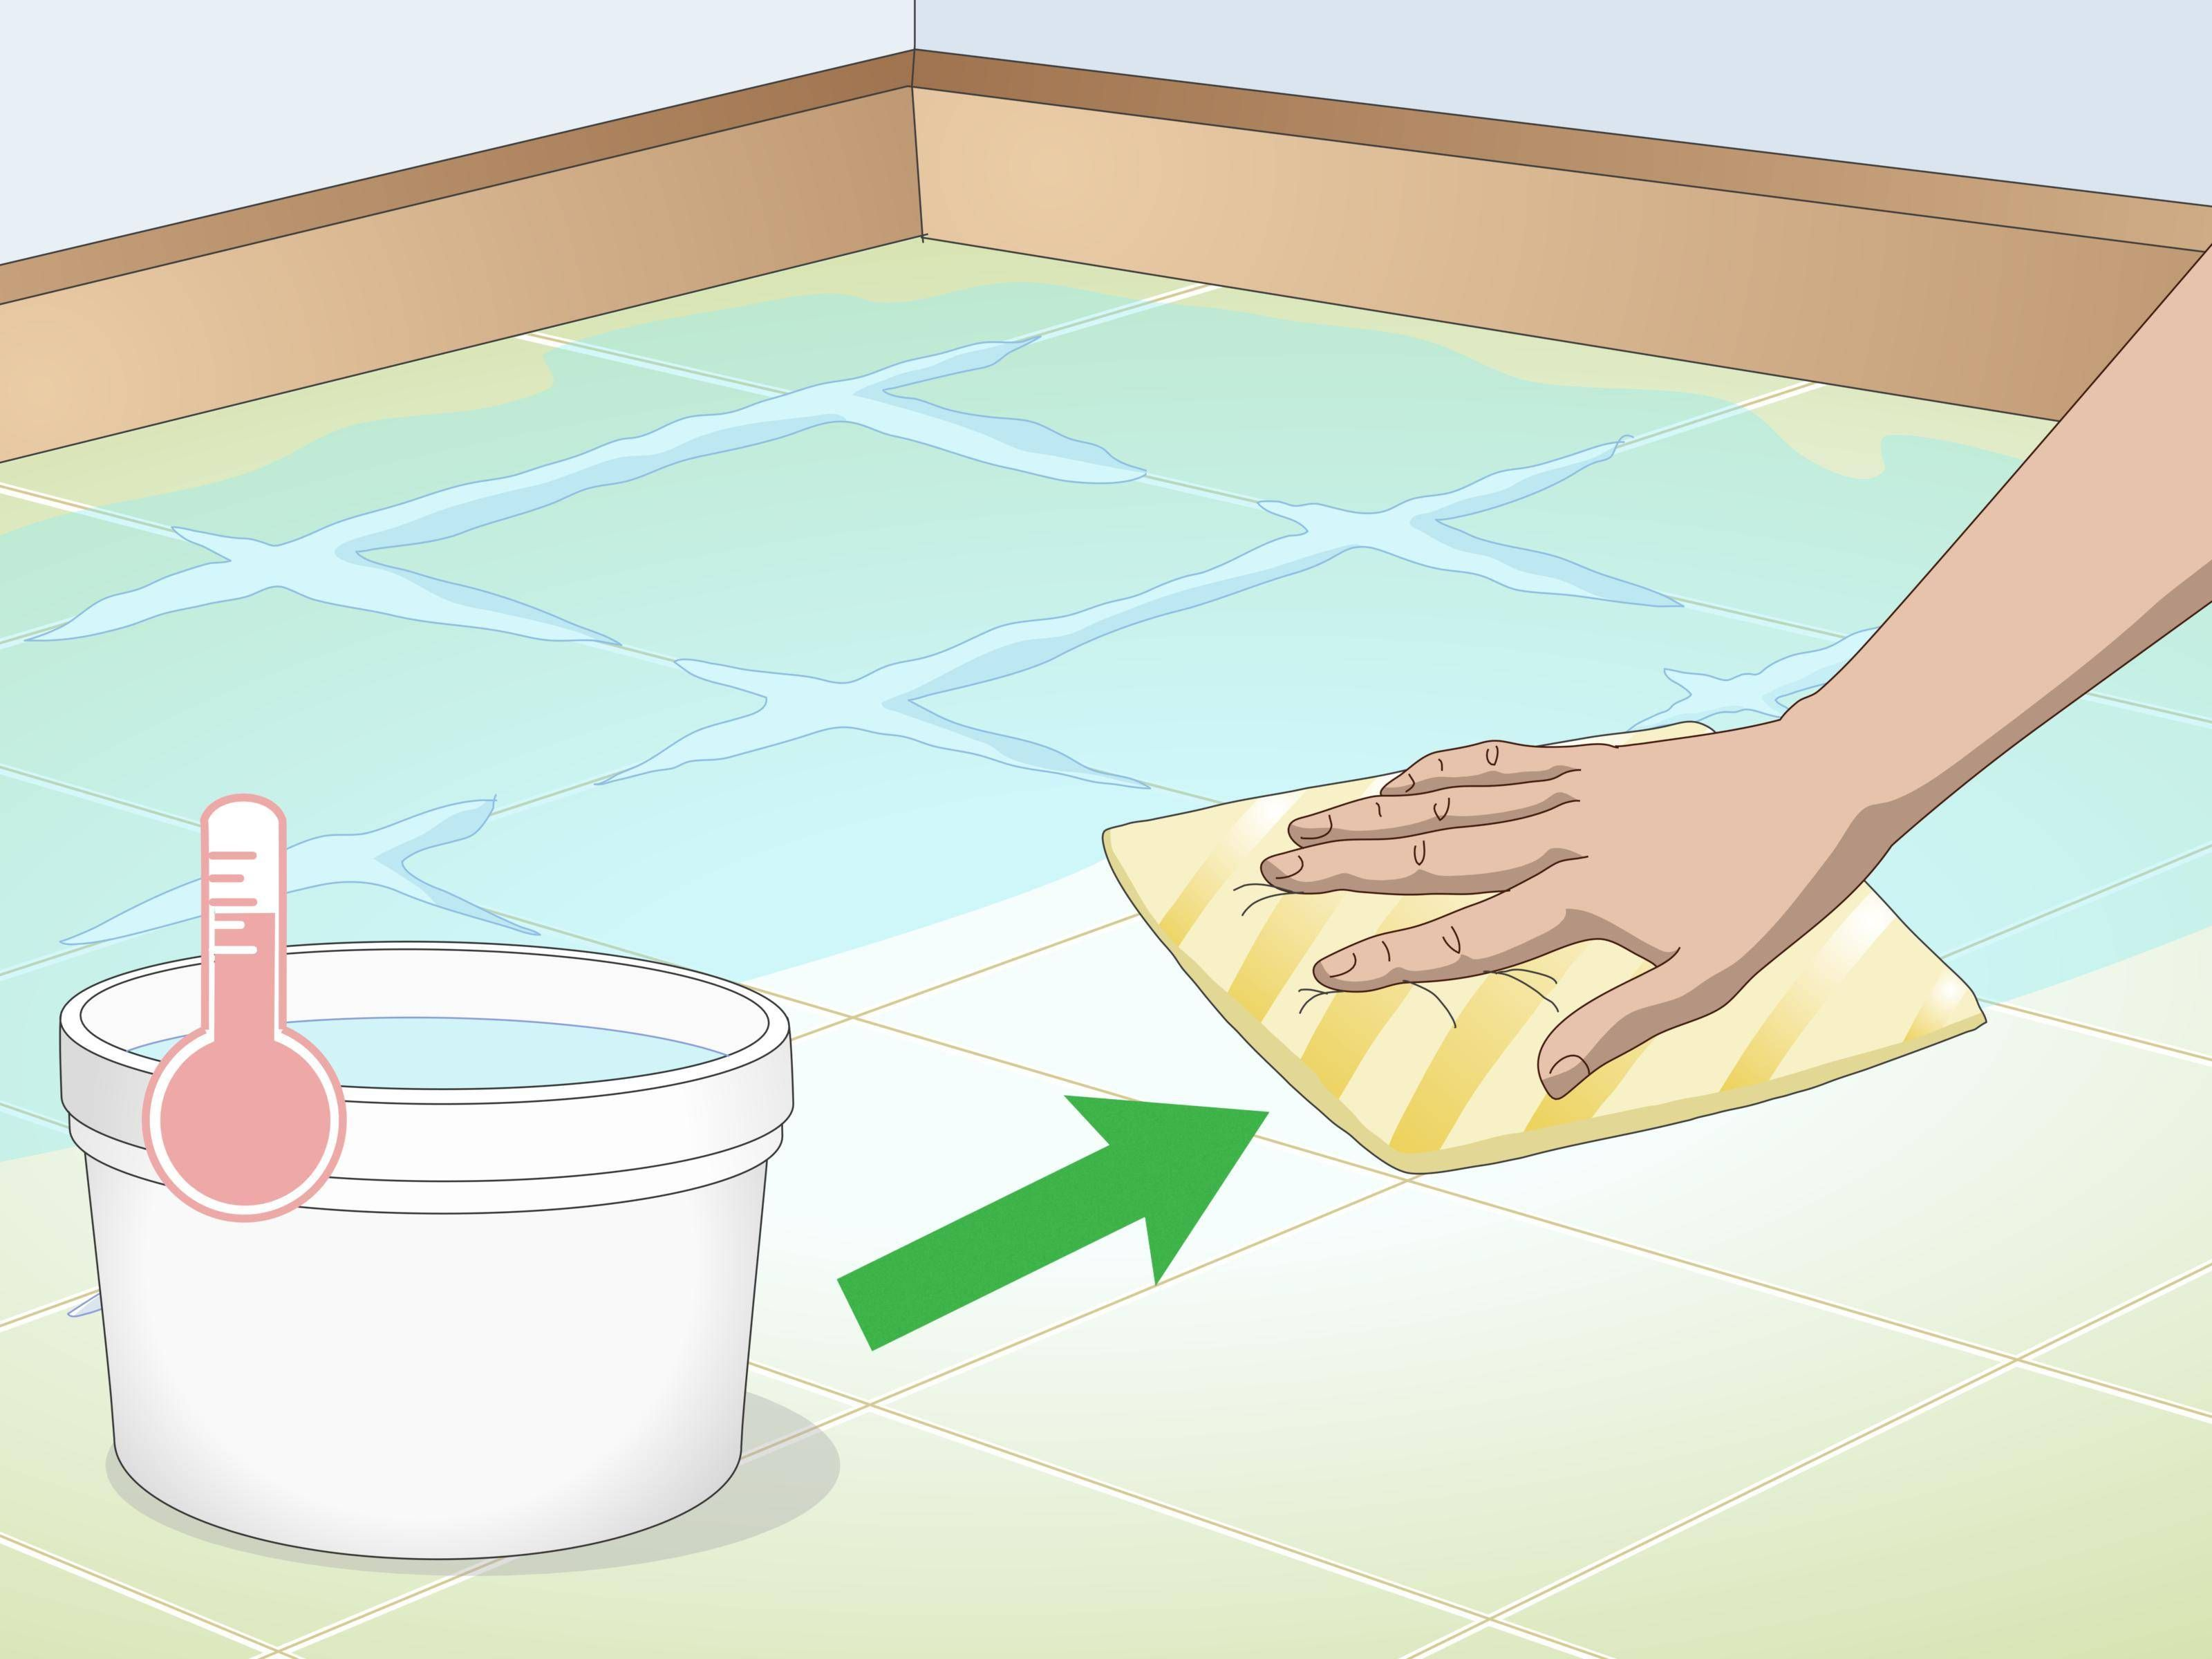 What To Use To Clean Bathroom Tile Buildingdesign Homedesign Ar In 2020 Cleaning Bathroom Tiles Clean Tile Bathroom Cleaning